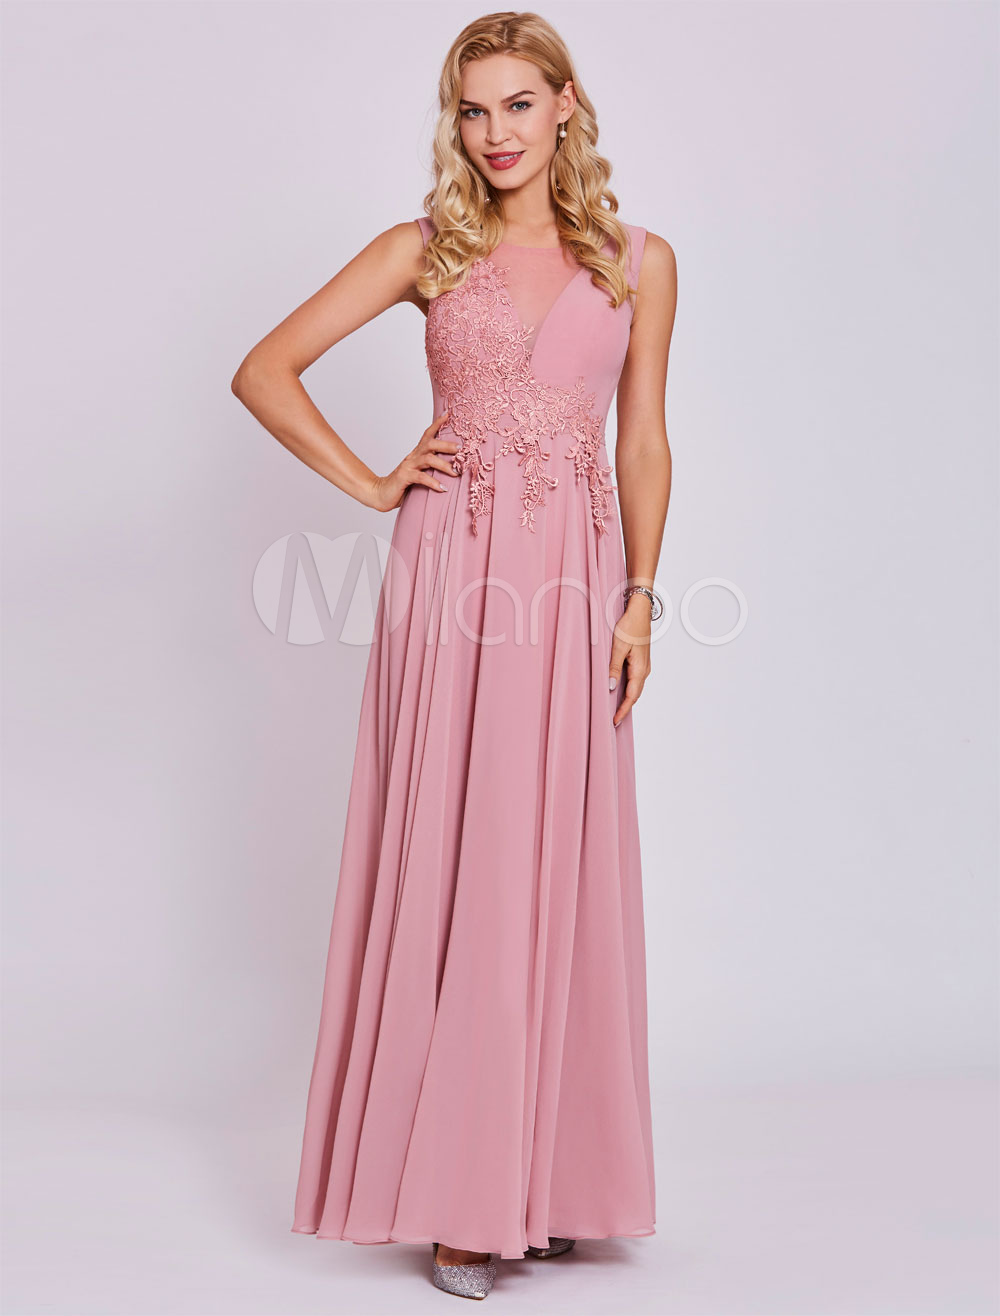 Prom Dresses 2018 Long Lace Applique Chiffon Sleeveless Illusion Cameo Pink Formal Party Dress